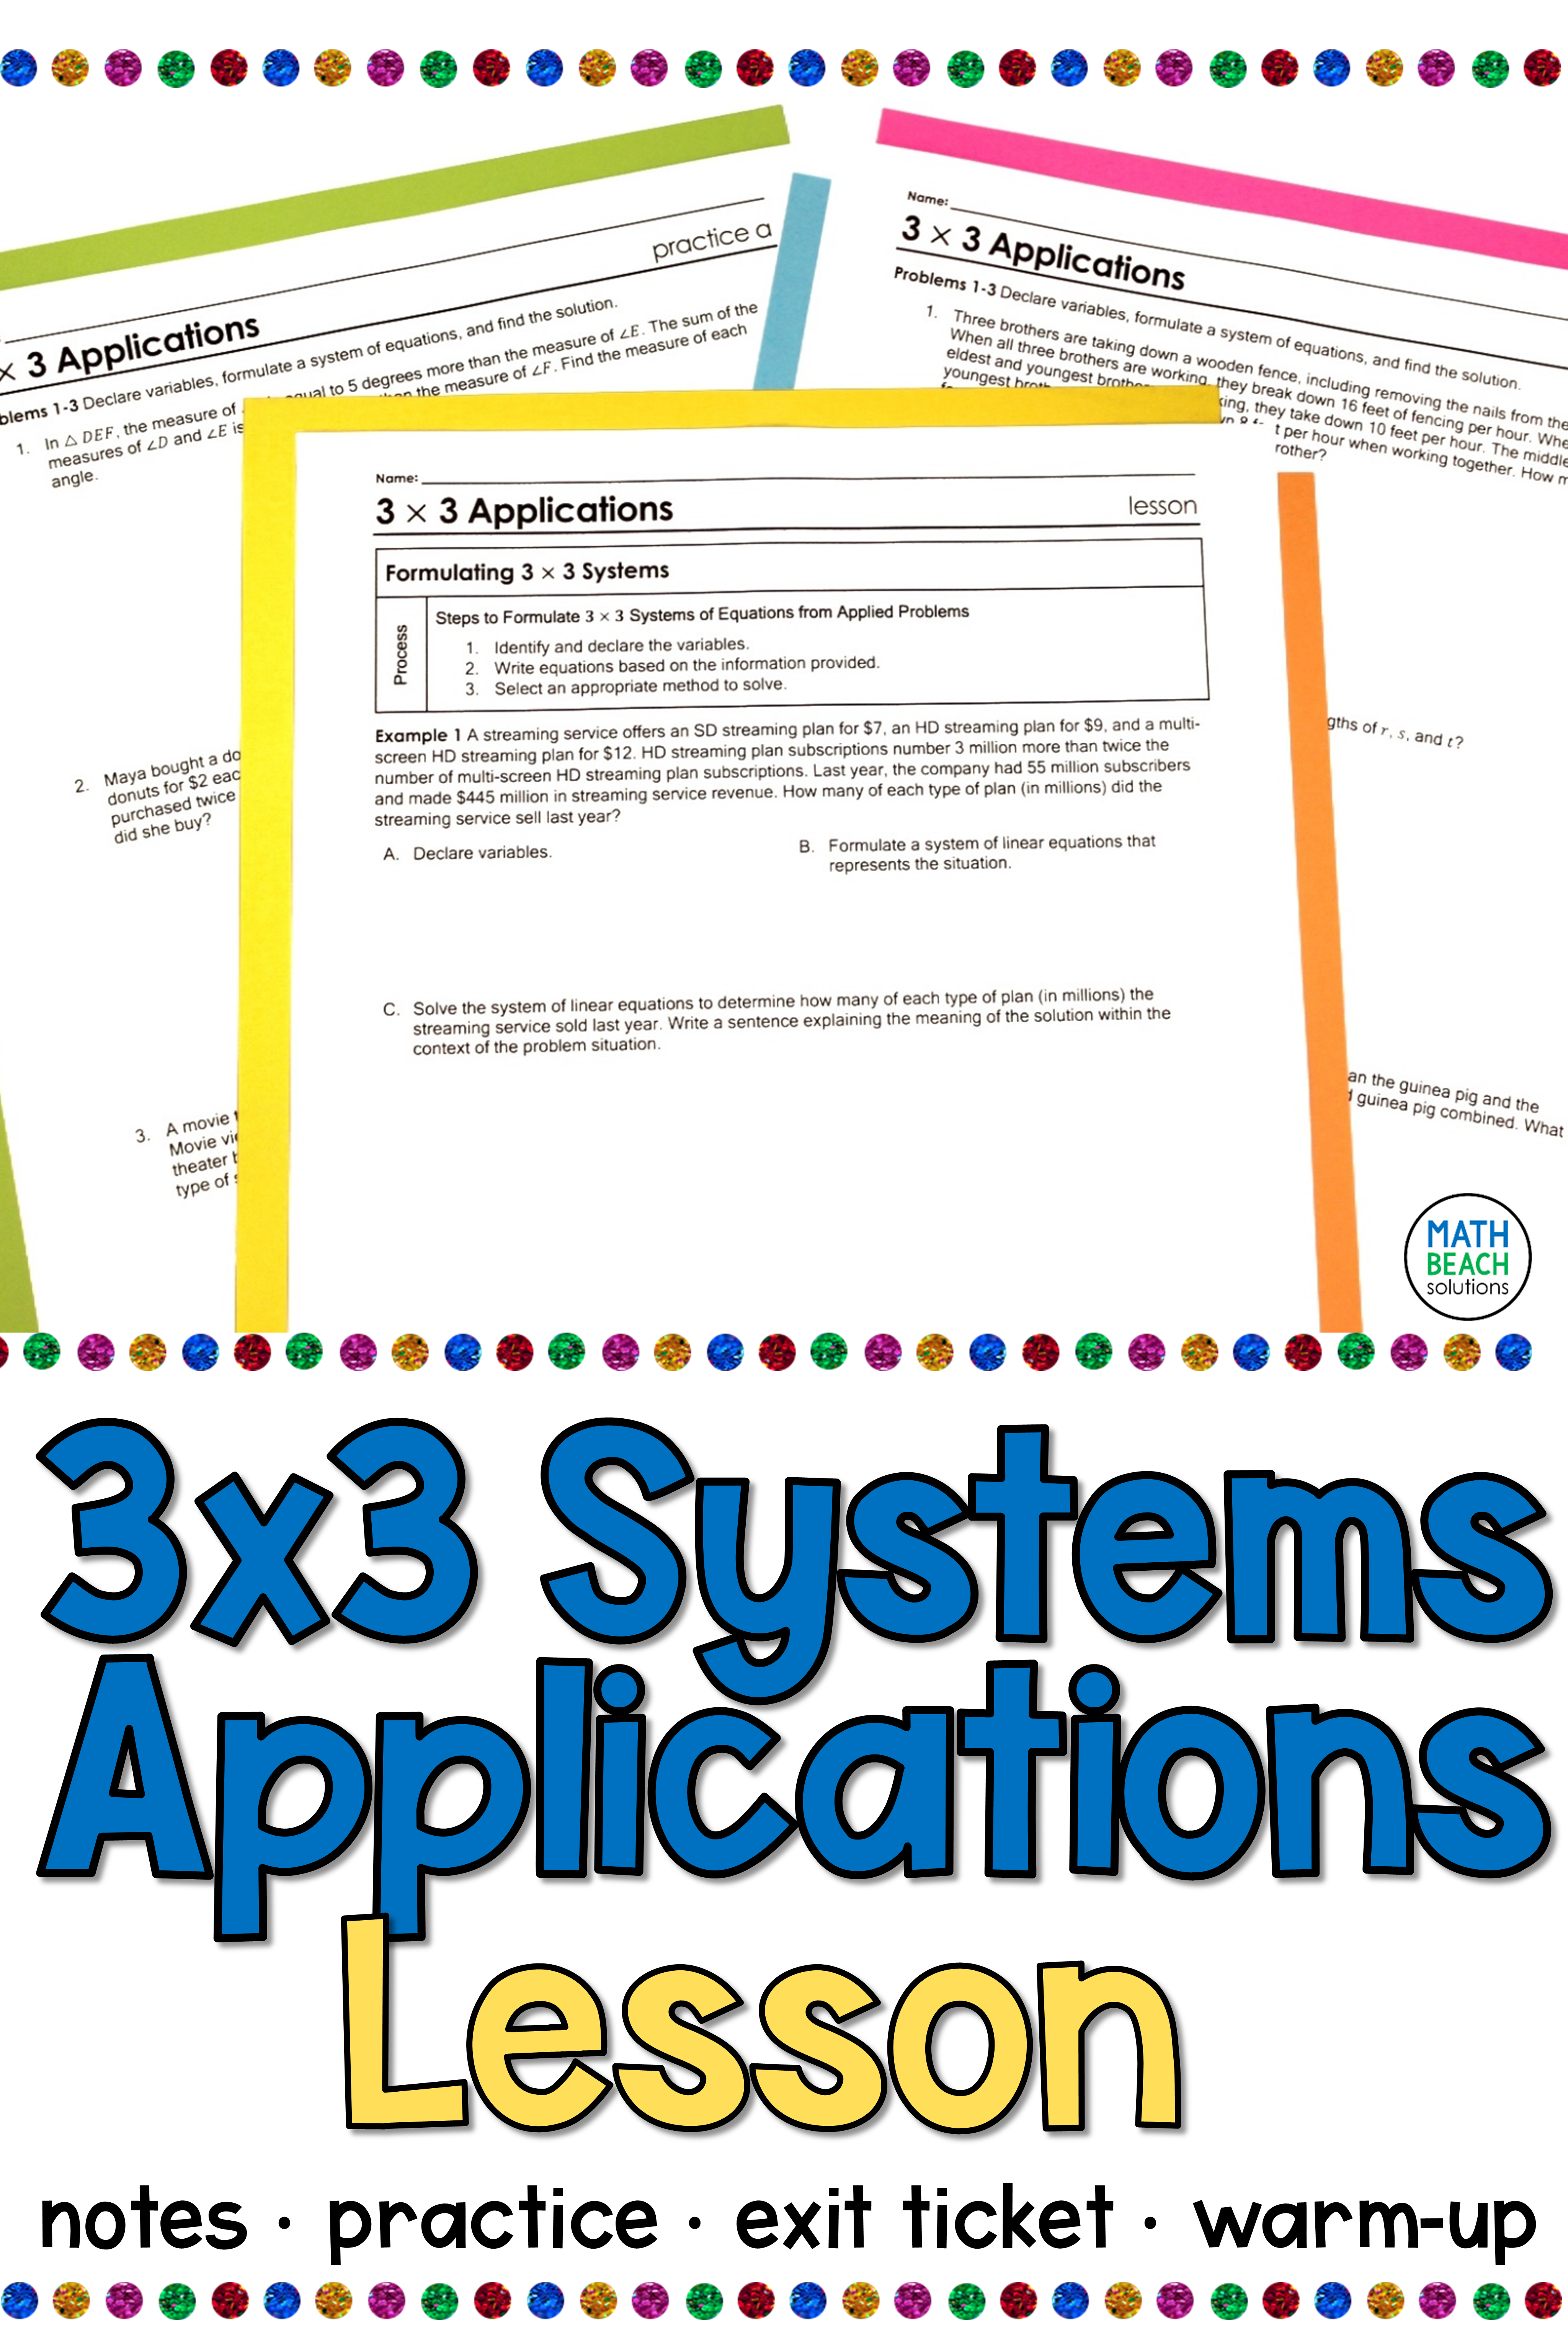 Applications of 3x3 Systems of Linear Equations Lesson